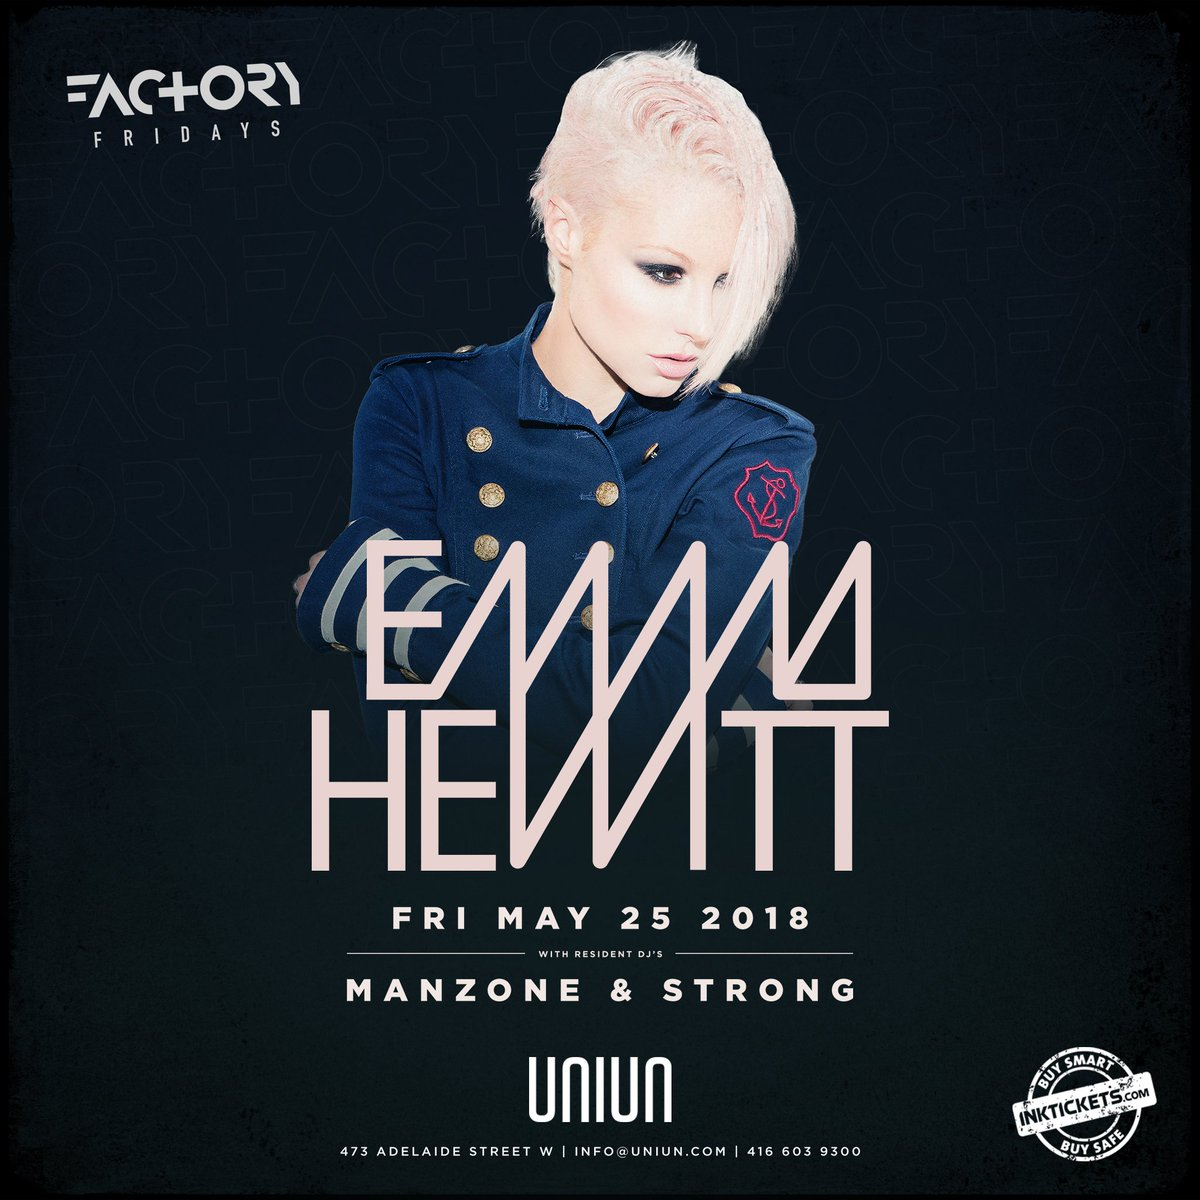 test Twitter Media - JUST ANNOUNCED: @emhewitt will be our special guest inside #FactoryFridays on May 25th with @ManzoneStrong.  Tickets are on sale now - grab them before it's too late: https://t.co/ydUkLr9WxW https://t.co/MQRu0STZRj